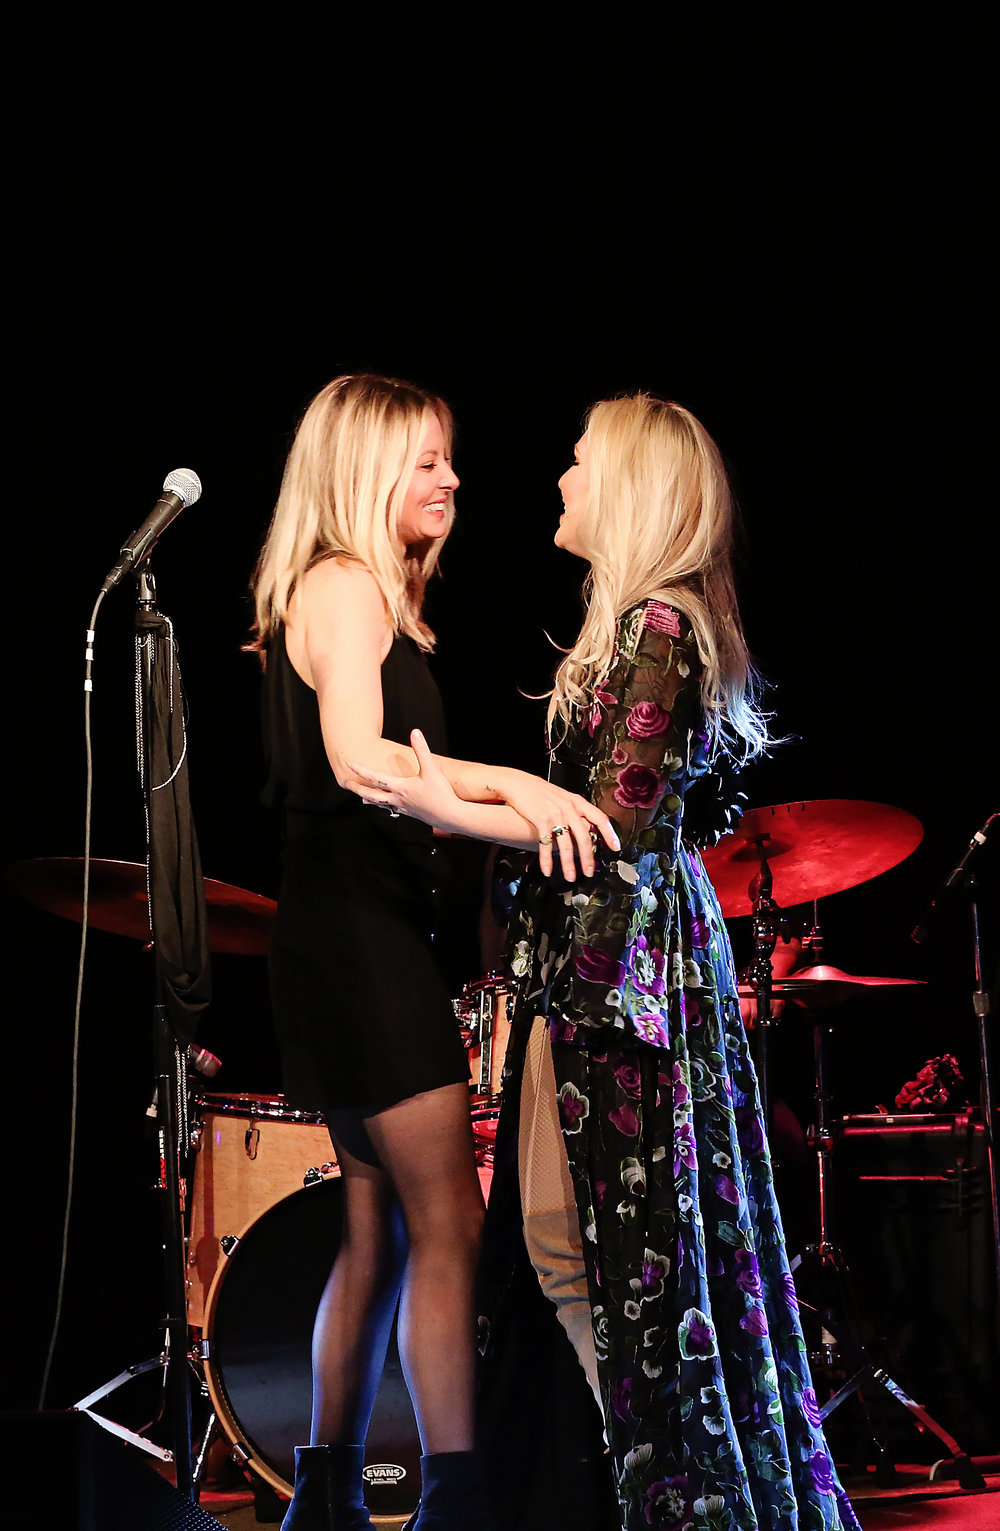 Cherish & Kaitlin Doubleday